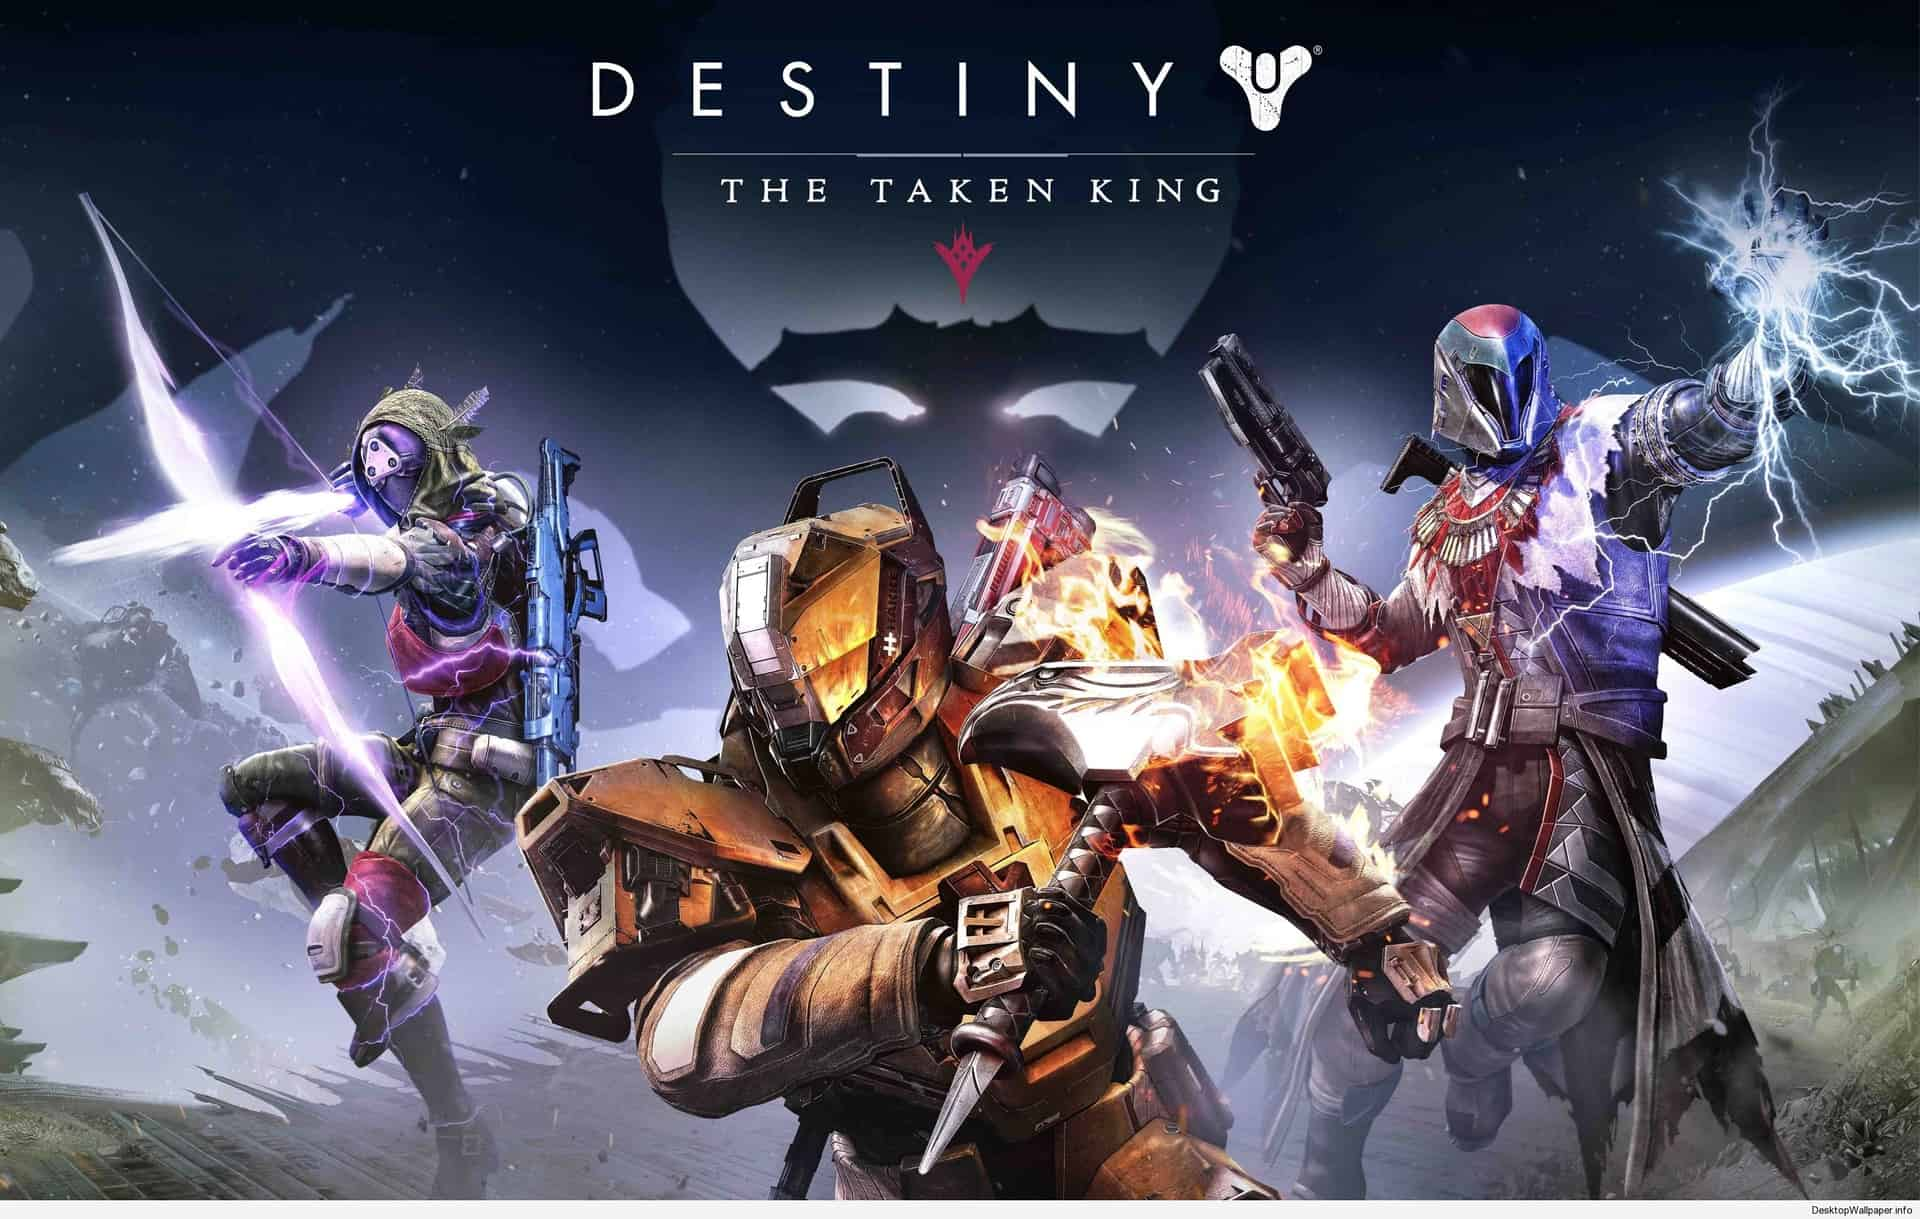 4k Game Wallpaper - Destiny The Taken King Poster - HD Wallpaper